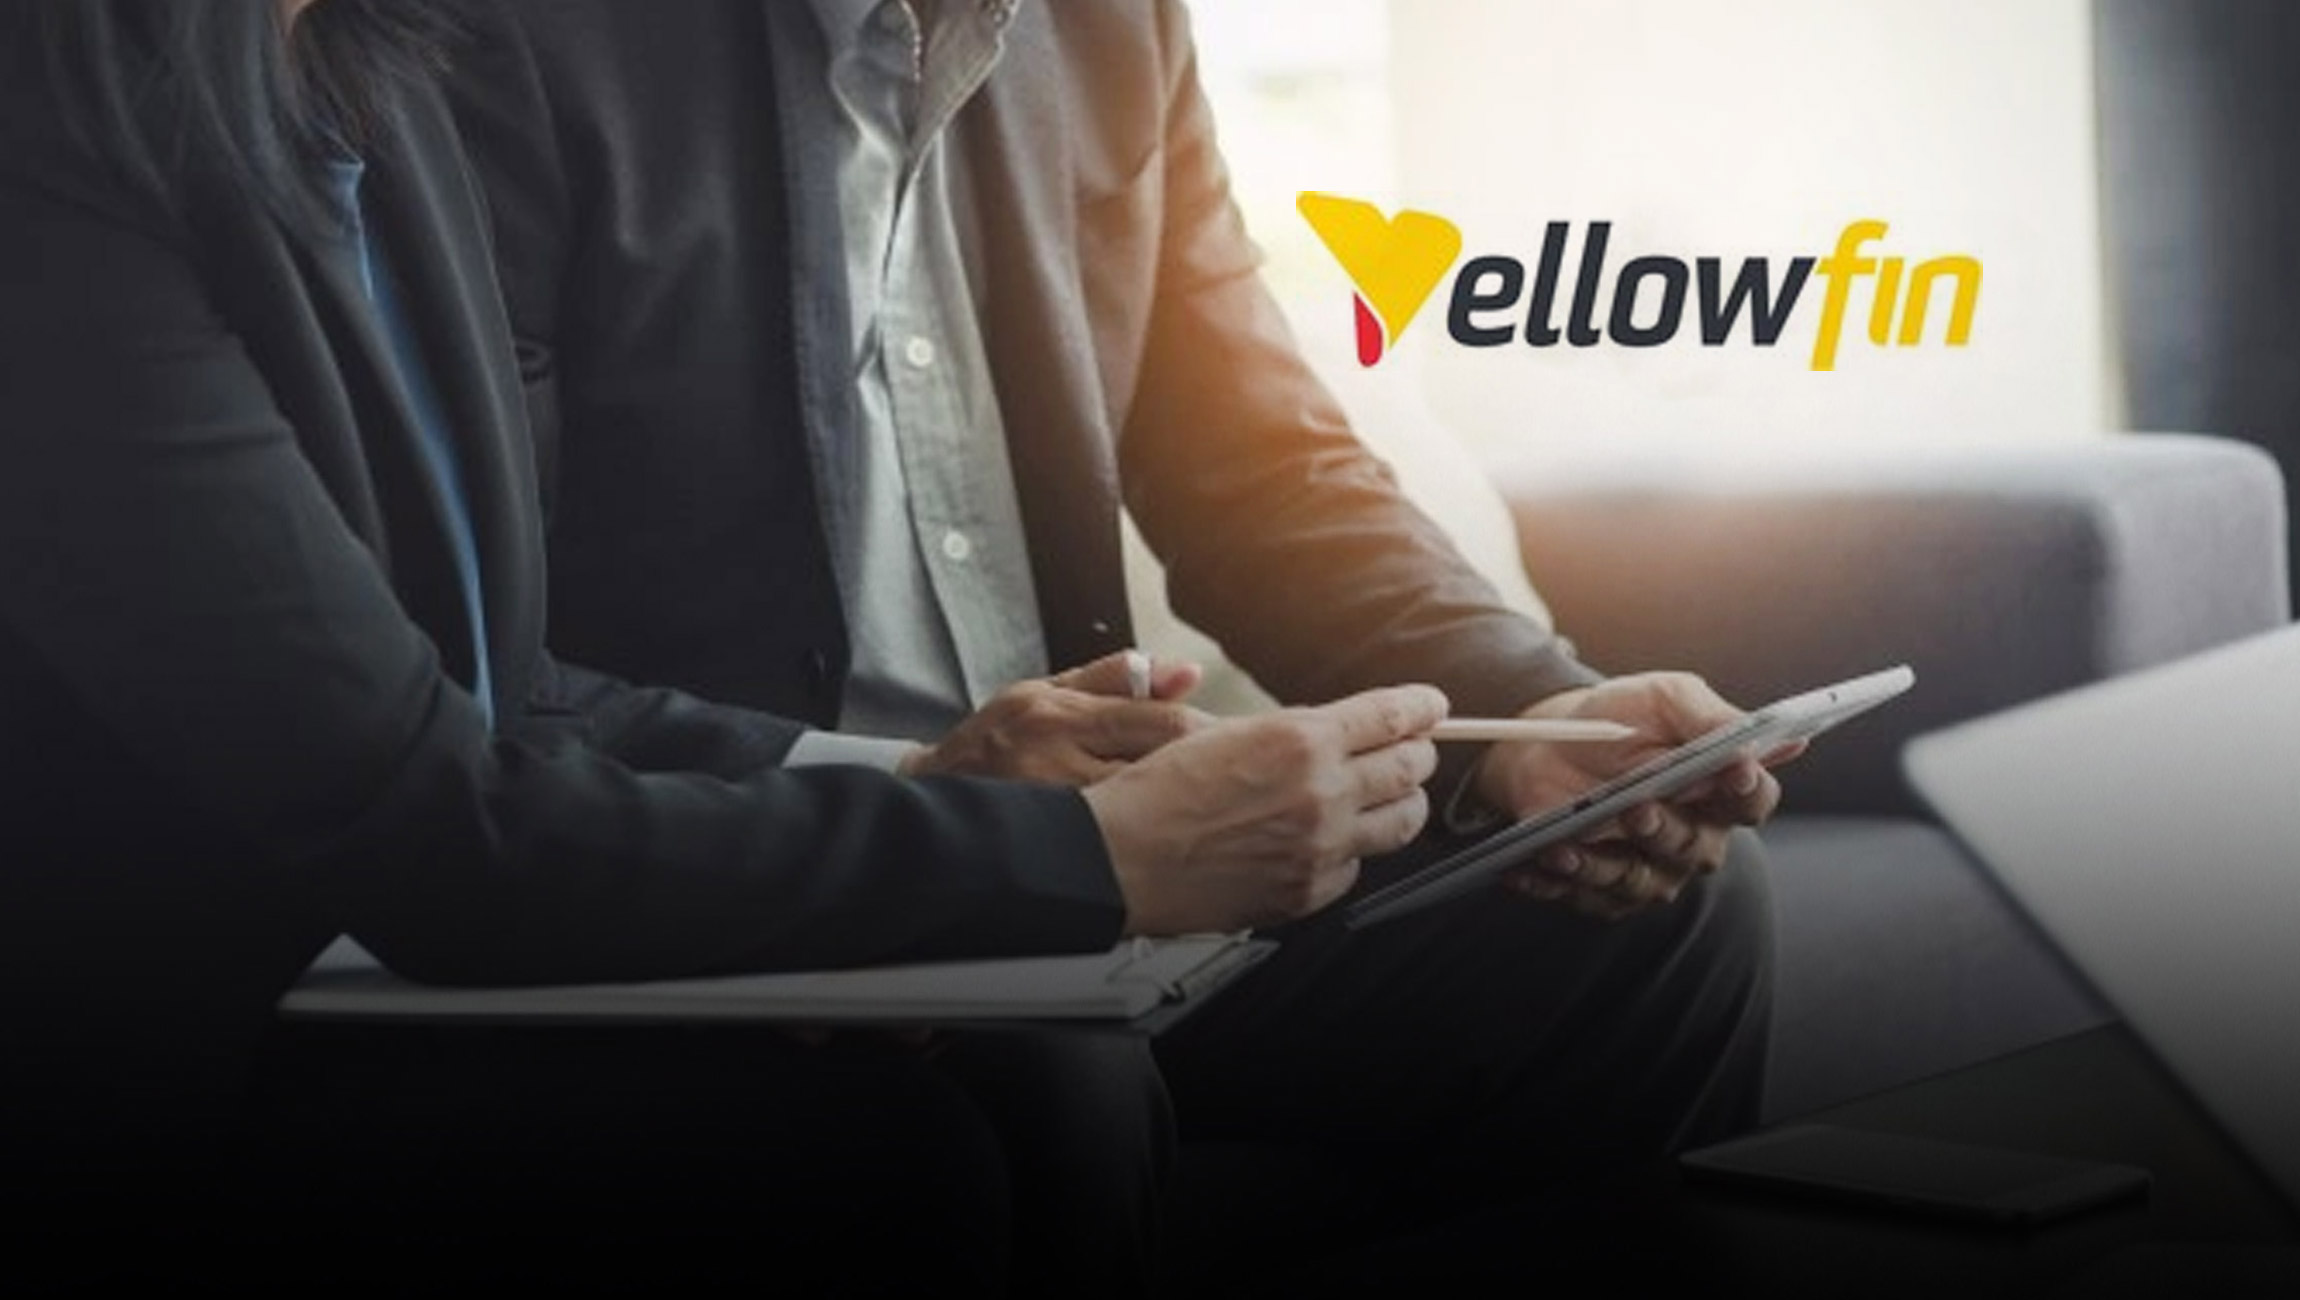 Yellowfin Launches World's First Data Storytelling Feed In New Release 6